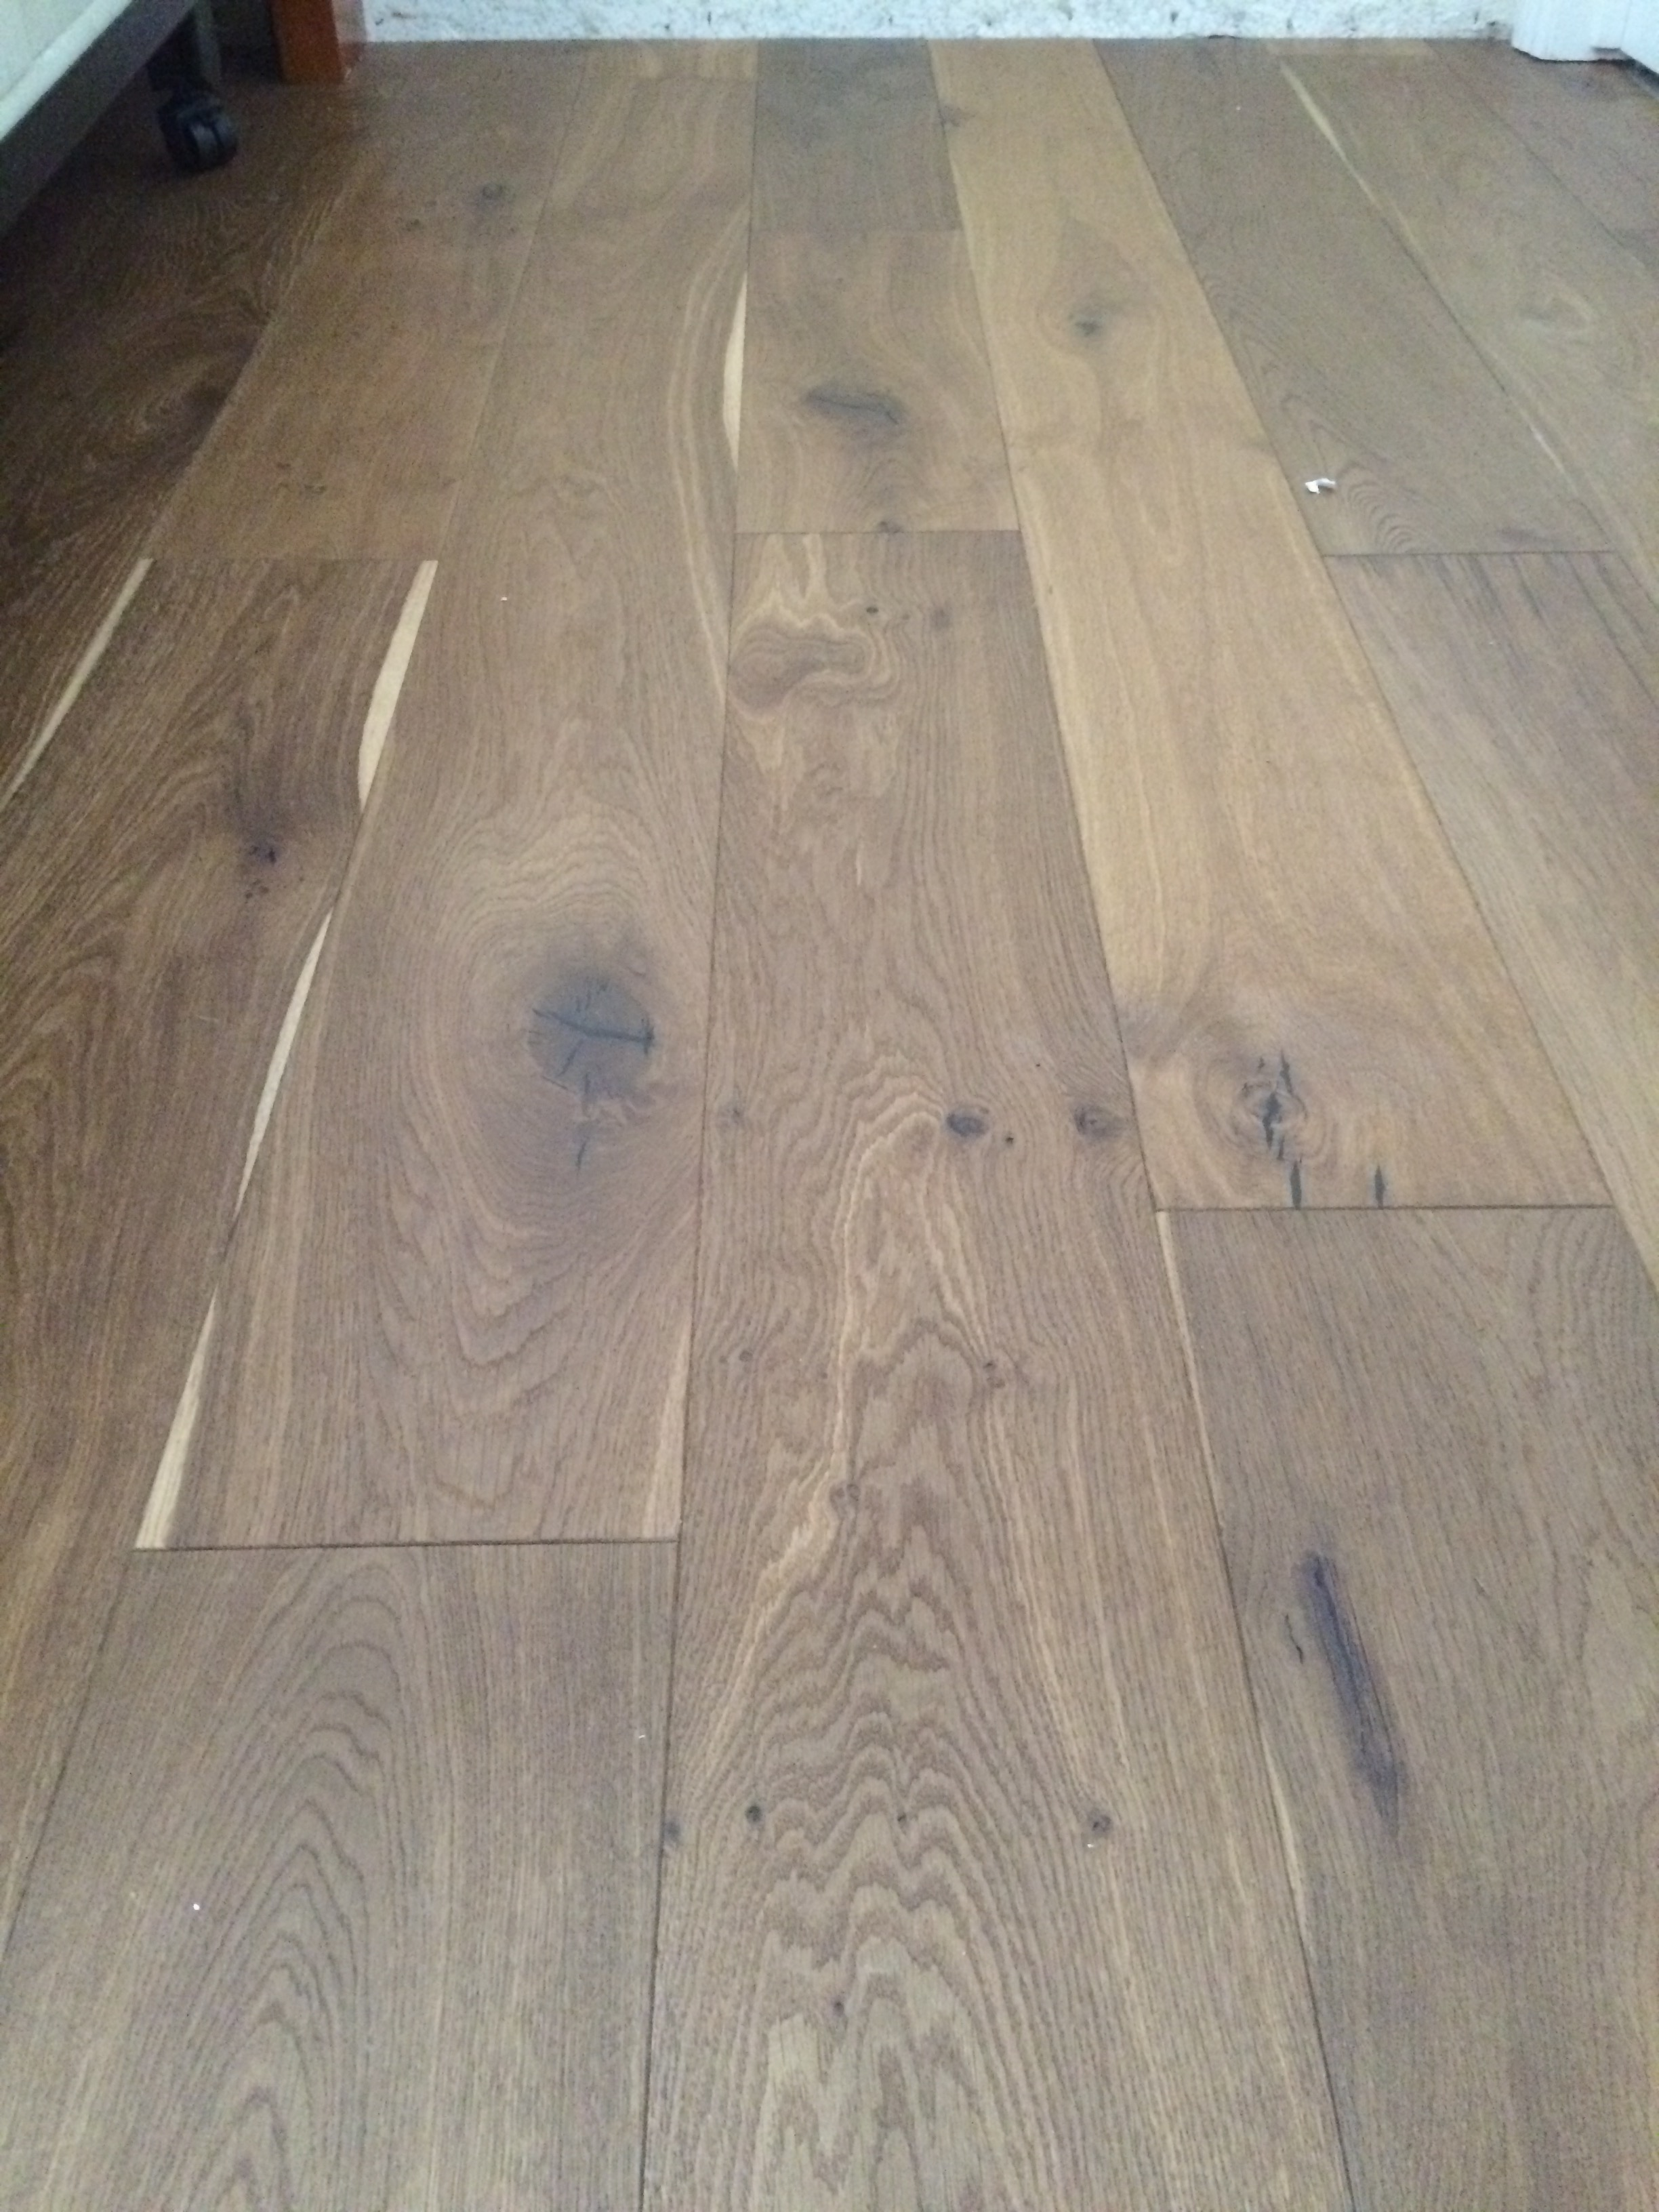 Diablo flooring inc hallmark hardwood danville ca for Hardwood flooring inc